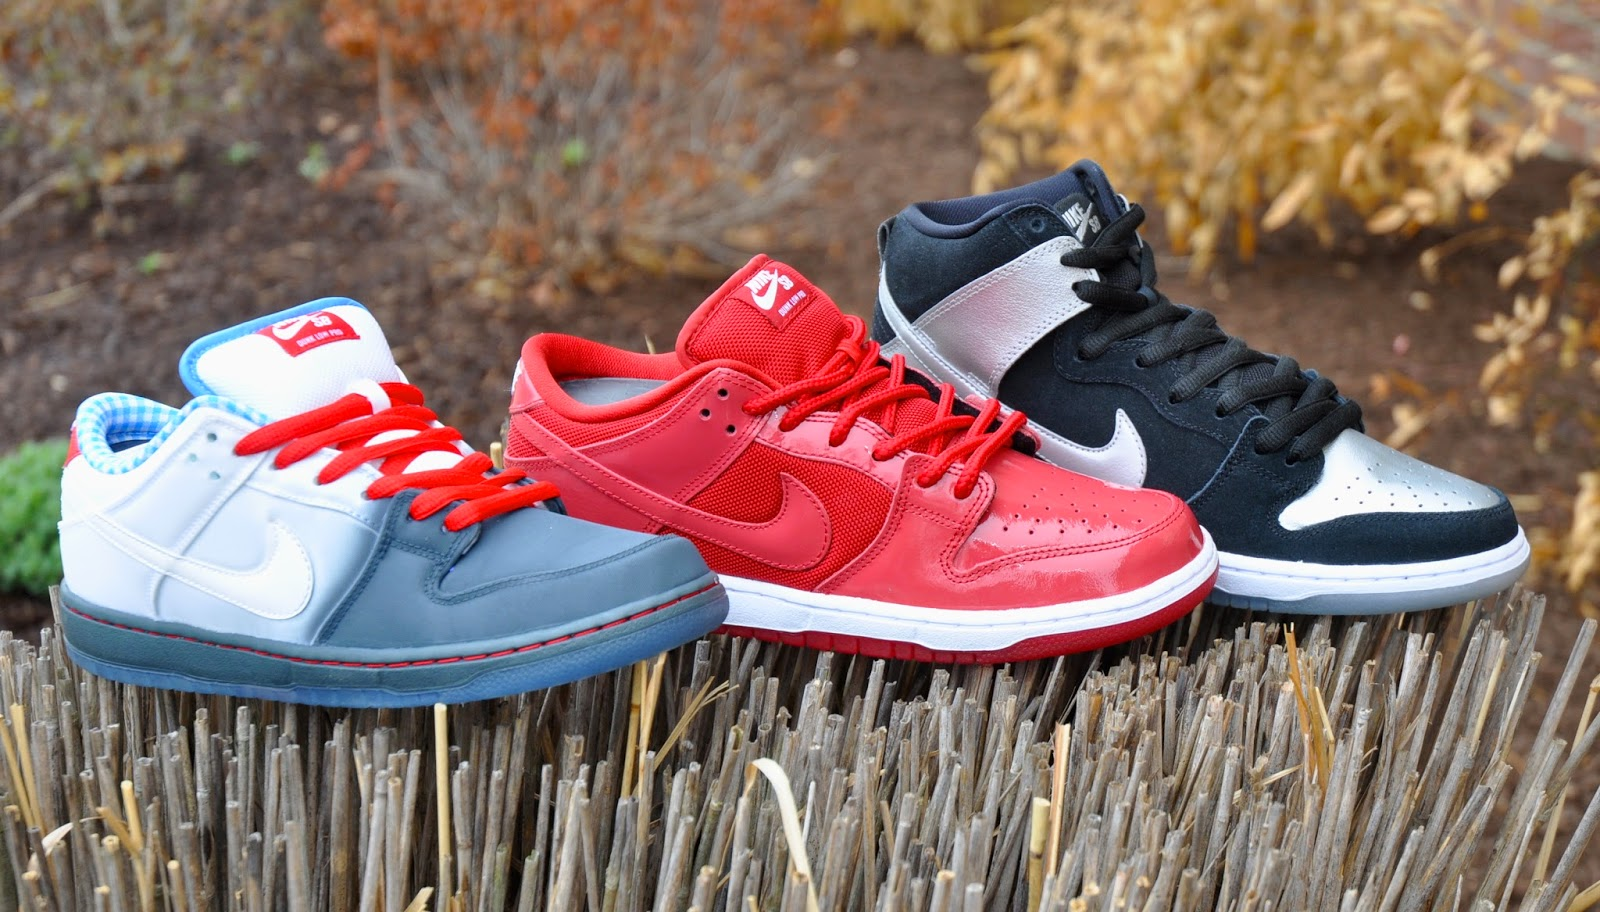 e489dfa90c05 Alpine Ski Shop Daily Drops  The Wizard of Oz Pack from Nike SB